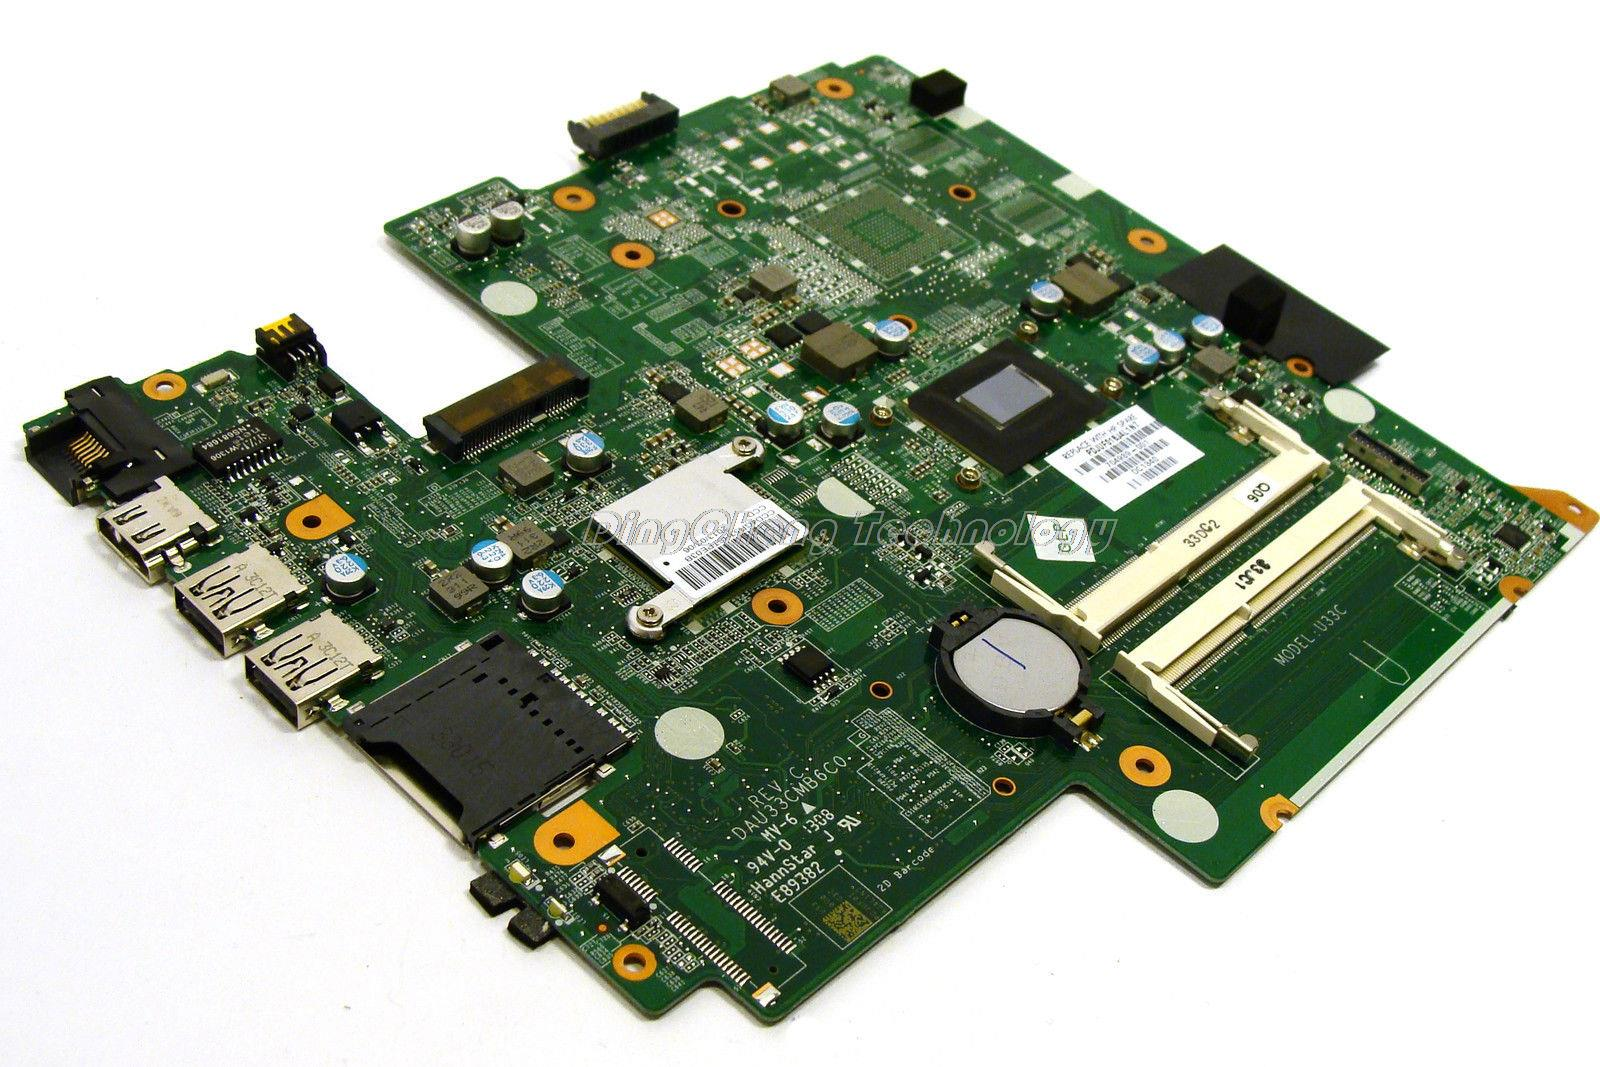 HOLYTIME laptop Motherboard For hp PAVILION 14 704989-001 DAU33CMB6C0 DDR3 <font><b>i5</b></font>-<font><b>3210M</b></font> cpu with integrated graphics card image